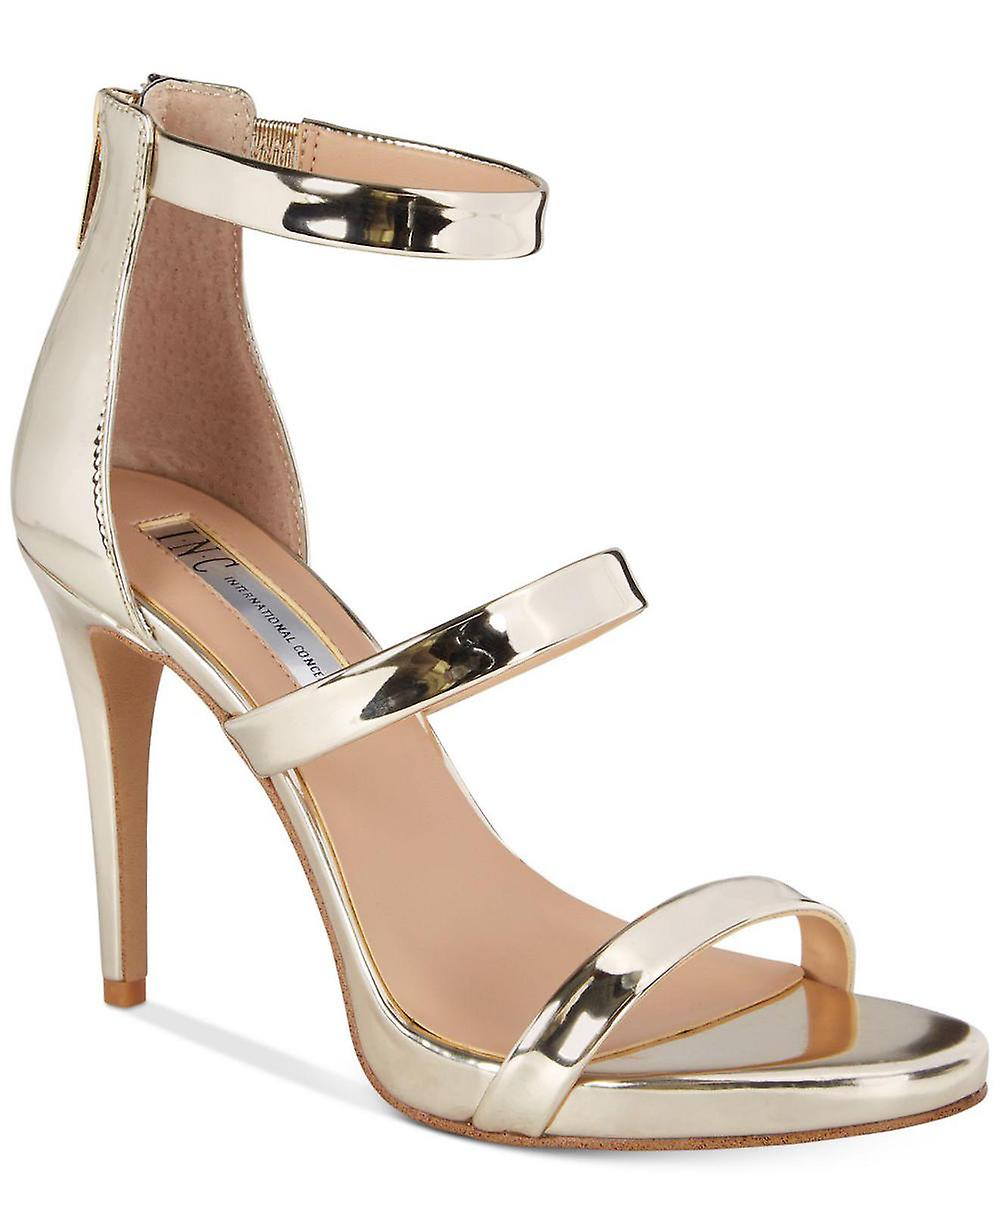 c441cb99fee INC International Concepts Womens Sadiee Open Toe Casual Ankle Strap Sandals